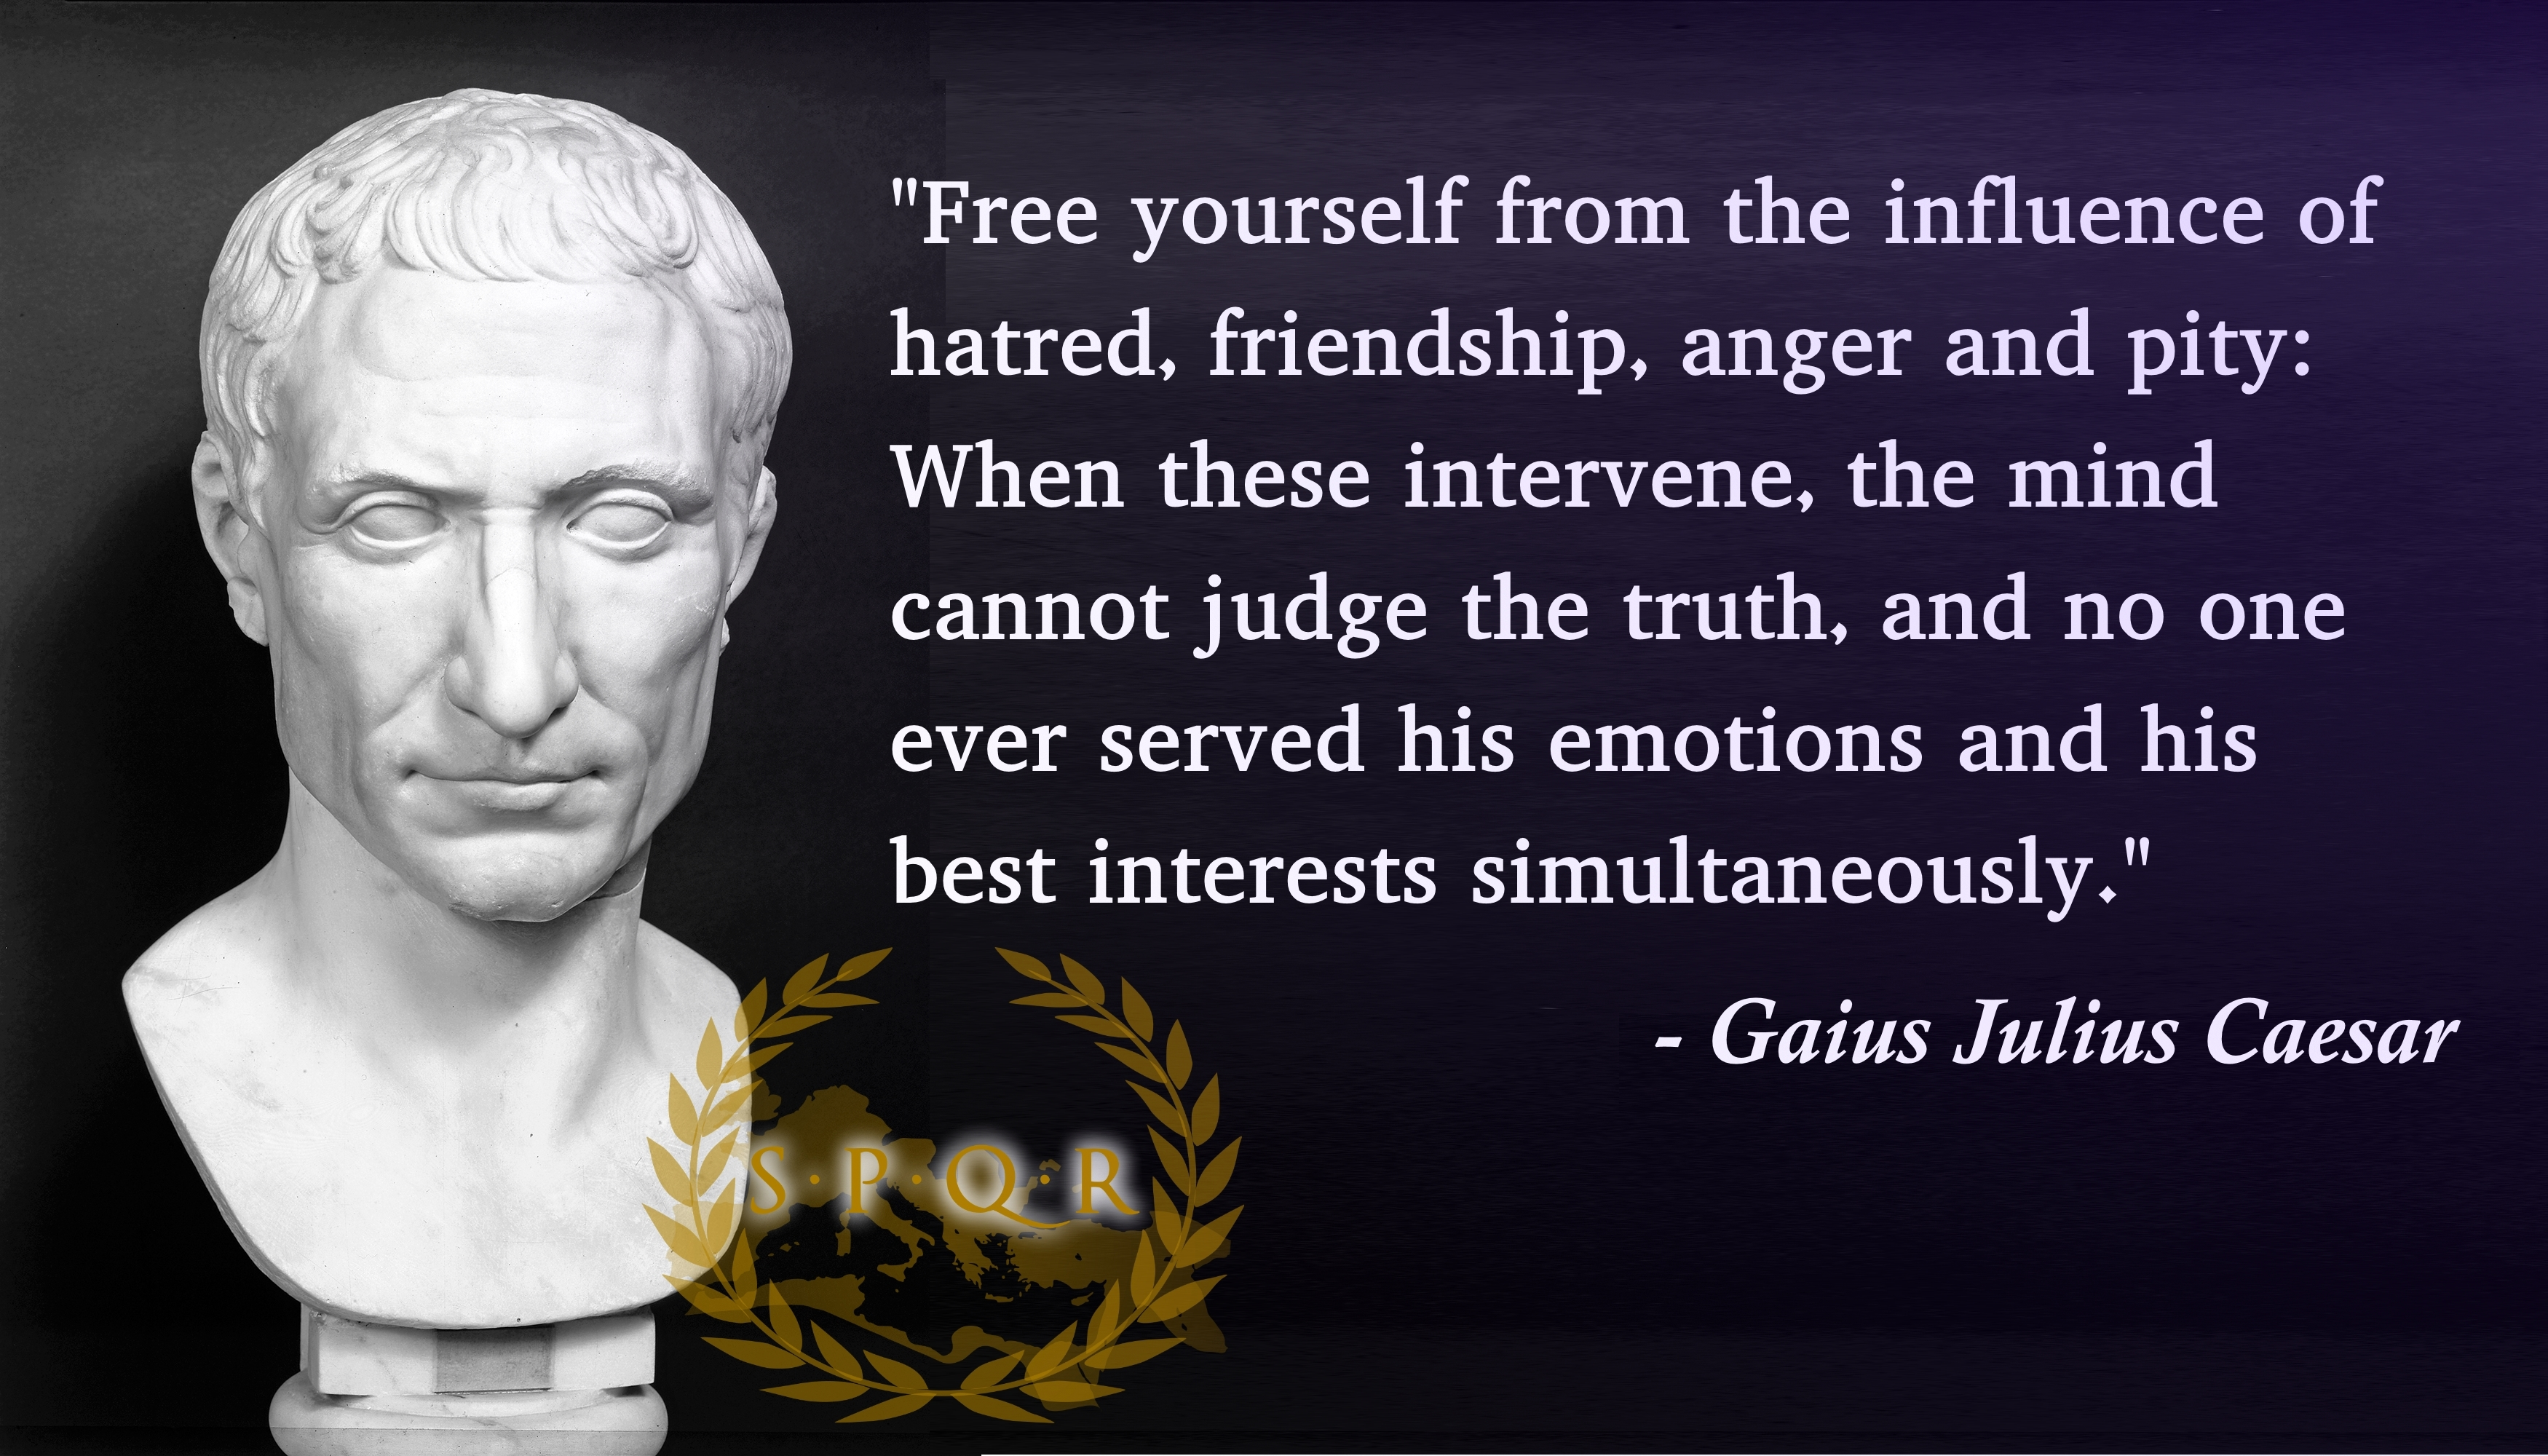 Roman Empire leader Gaius Julius Caesar on emotion and self-interest.